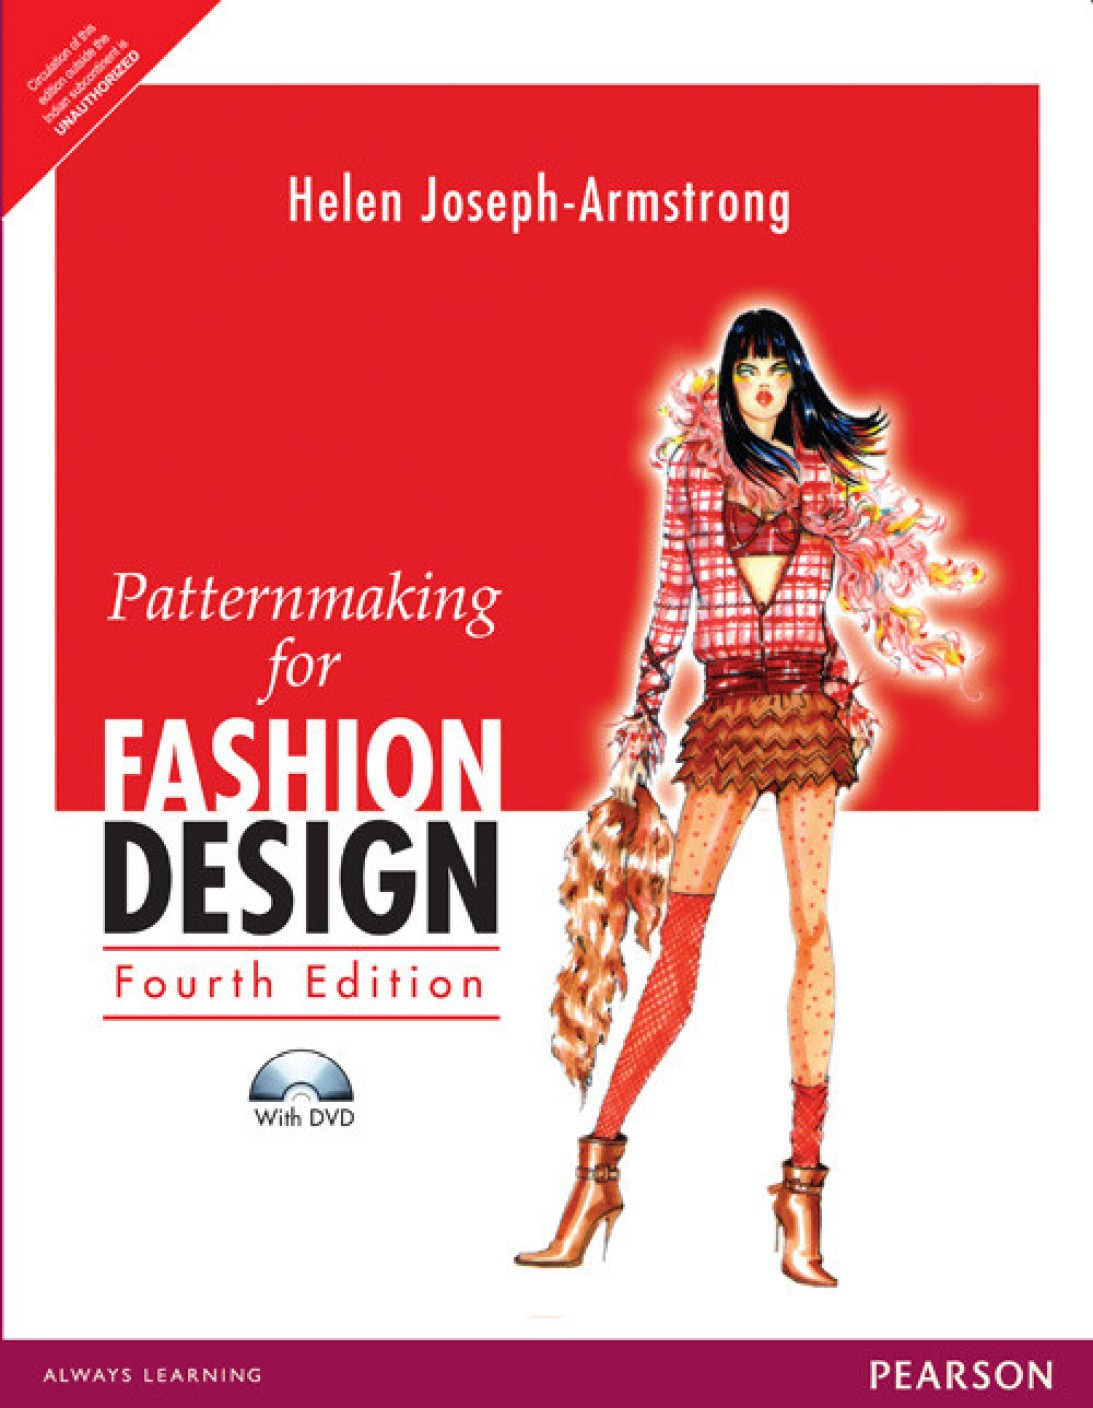 Patternmaking For Fashion Design And Dvd Package With Dvd 4th Edition Buy Patternmaking